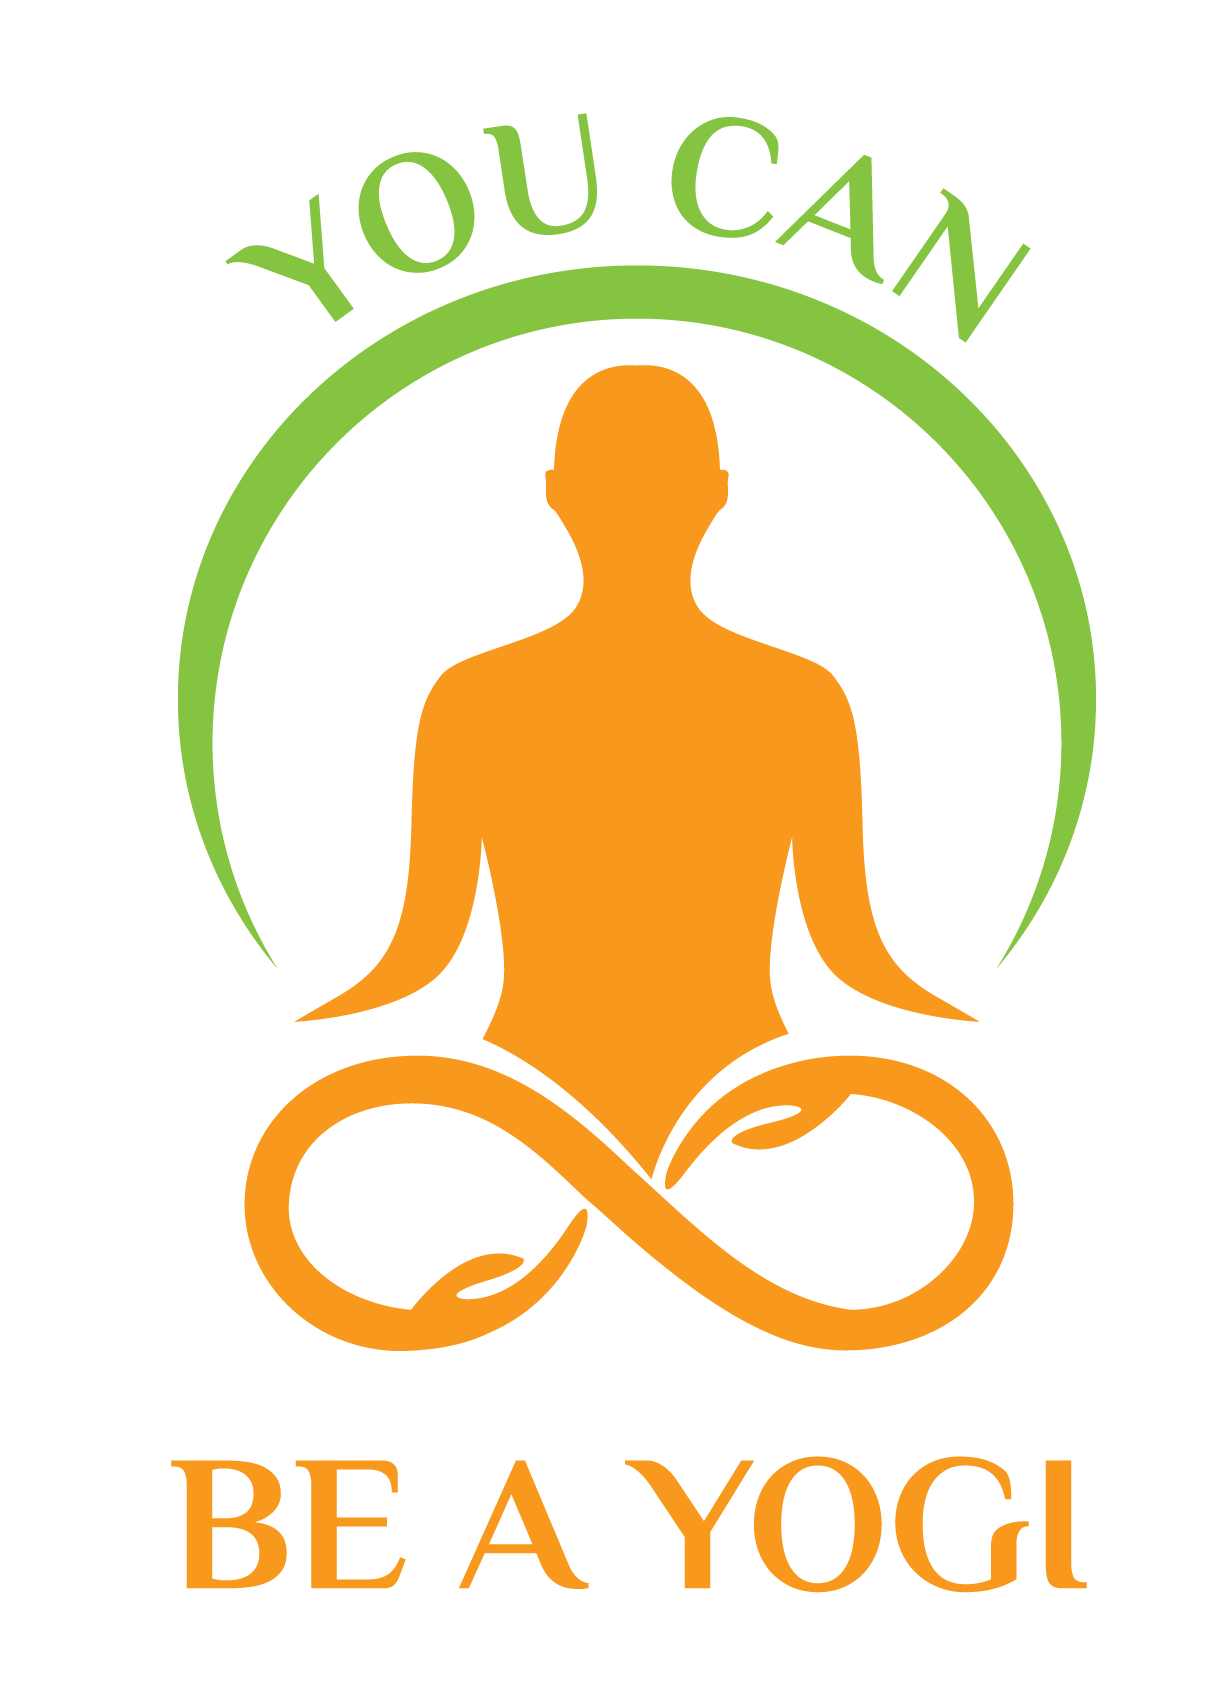 Meet mike you can. Meditation clipart power yoga